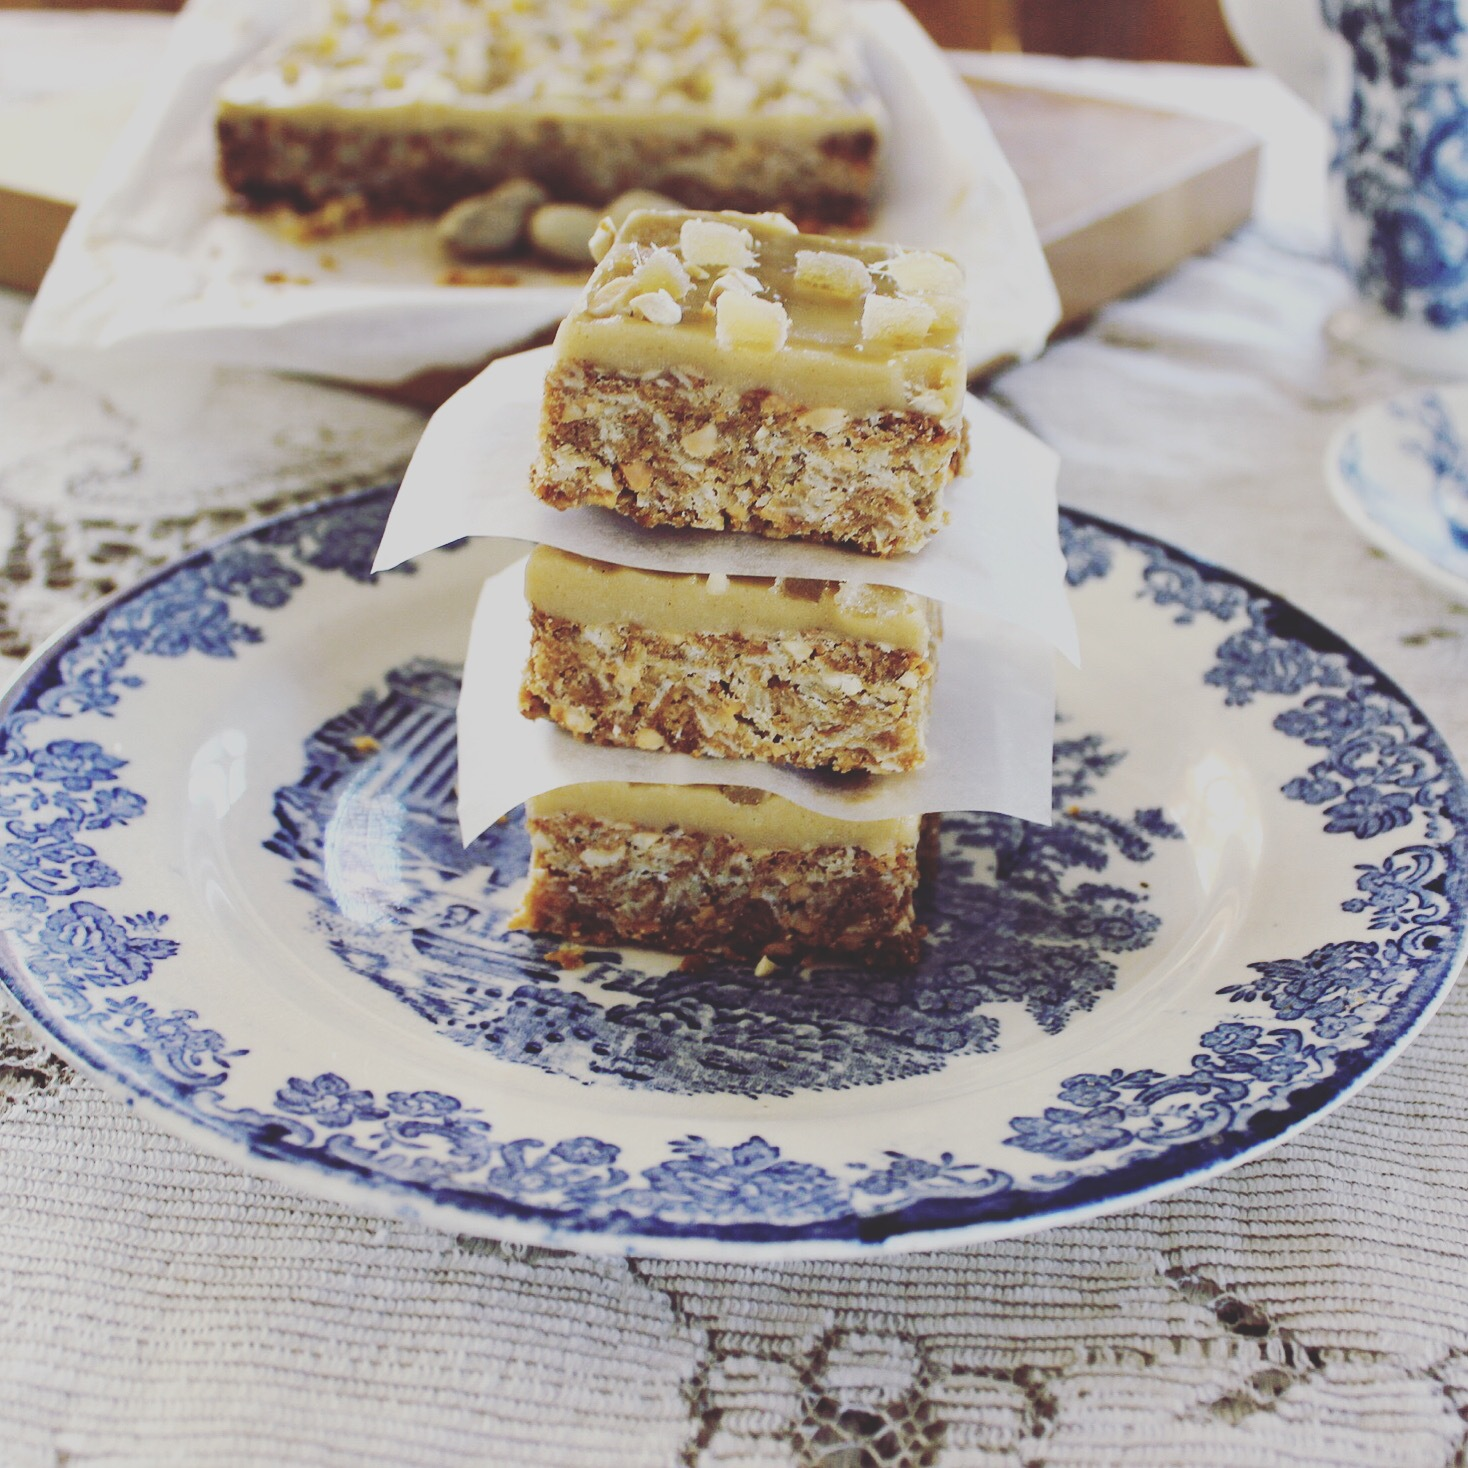 One-Pot Oat, Nut and Ginger Slice Recipe (with vegan option), by Emily Bakes